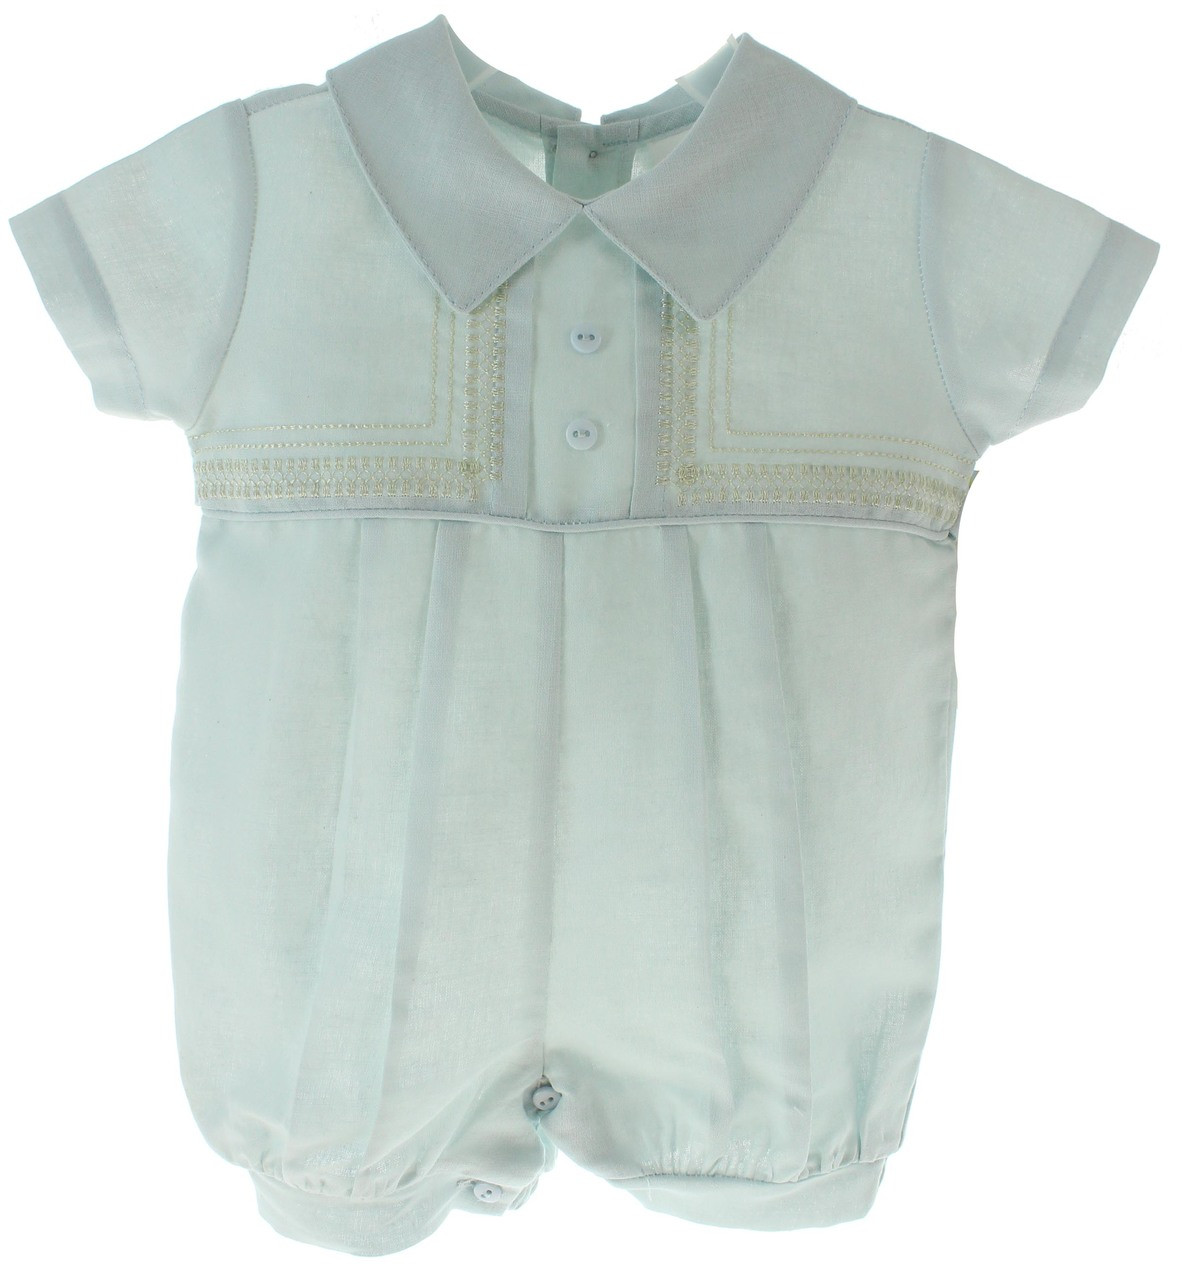 05a9bdb12 Baby Boys Blue Linen Romper Outfit